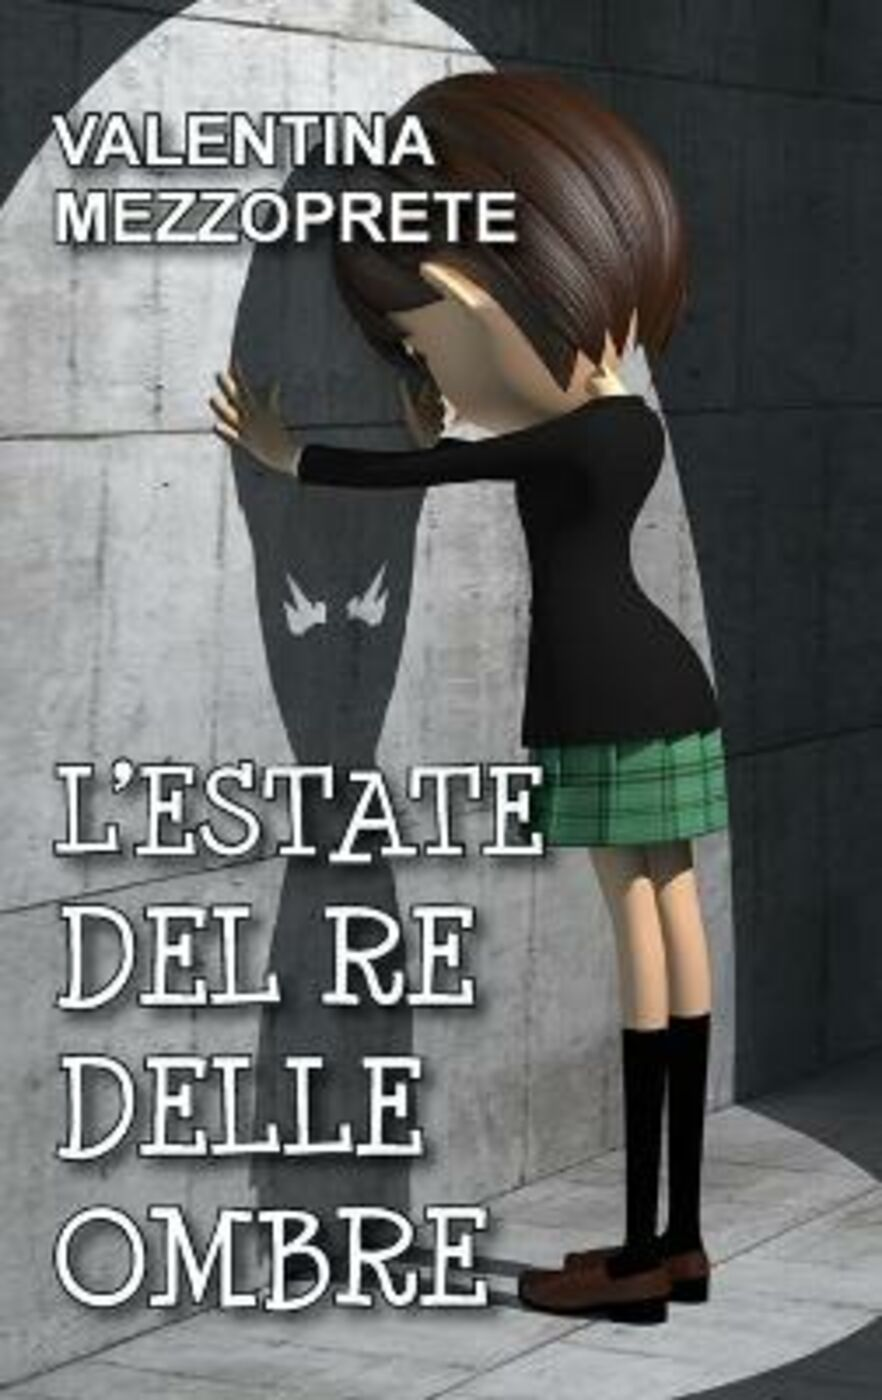 L' estate del re delle ombre